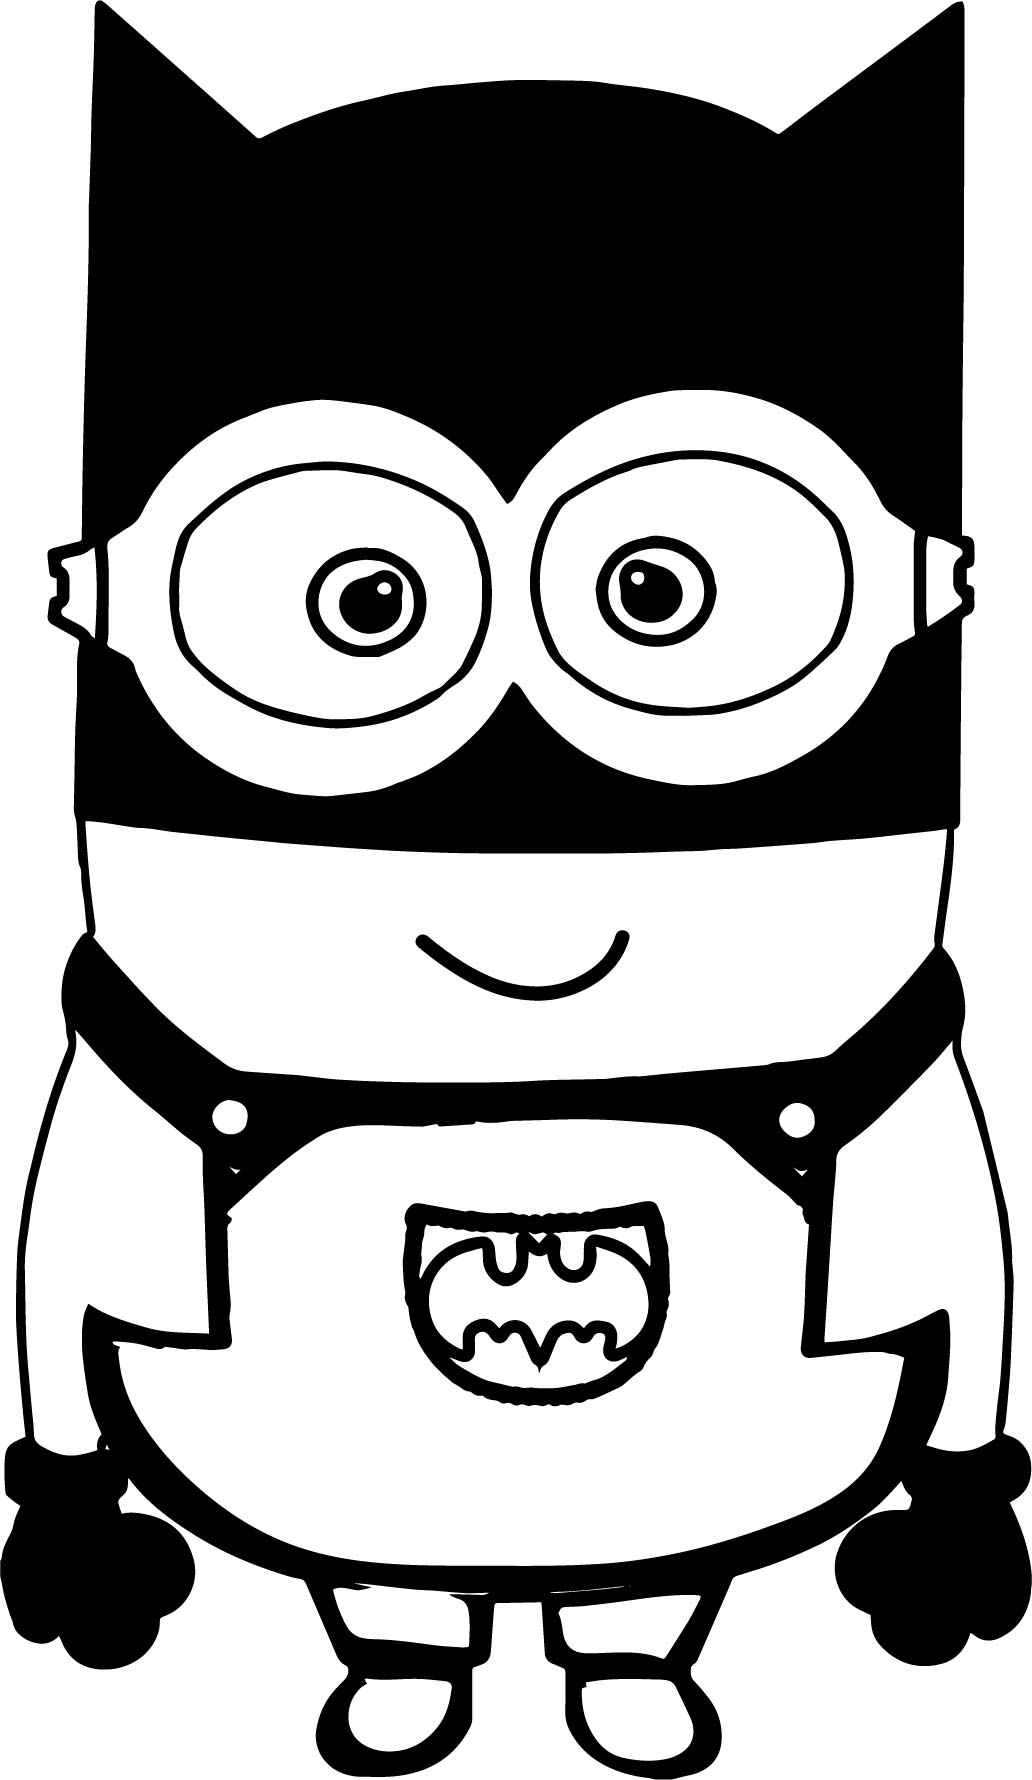 Batman Cartoon Minions Coloring Page Wecoloringpage